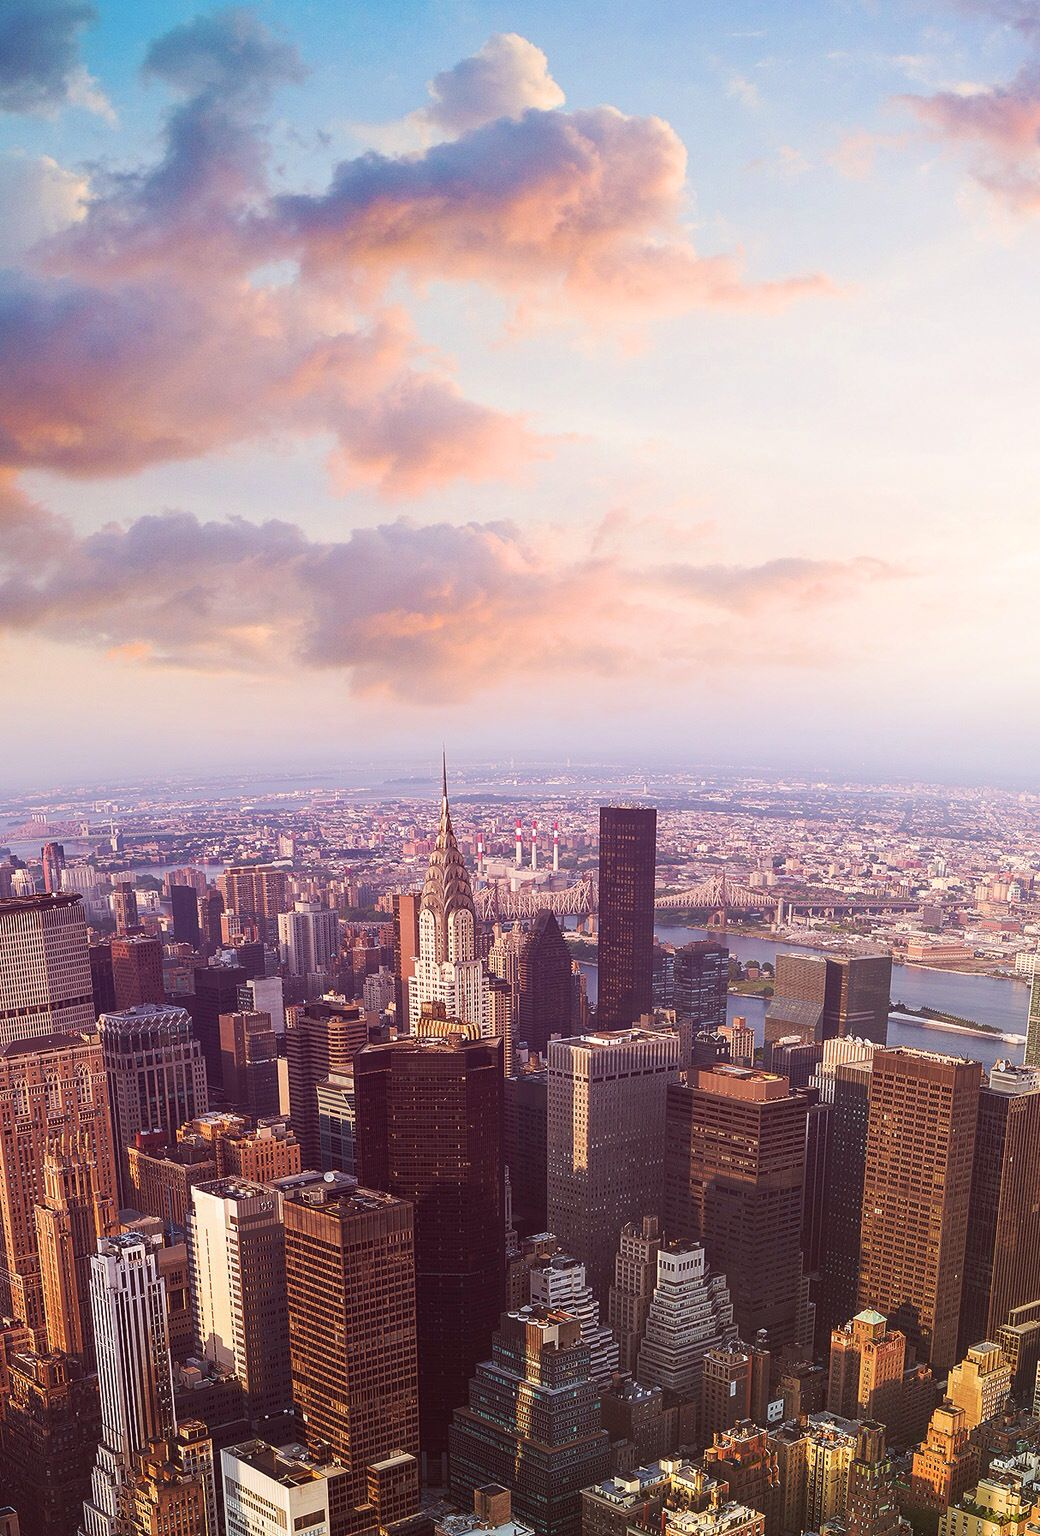 NY iphone wallpaper Favorite Places & Spaces Pinterest